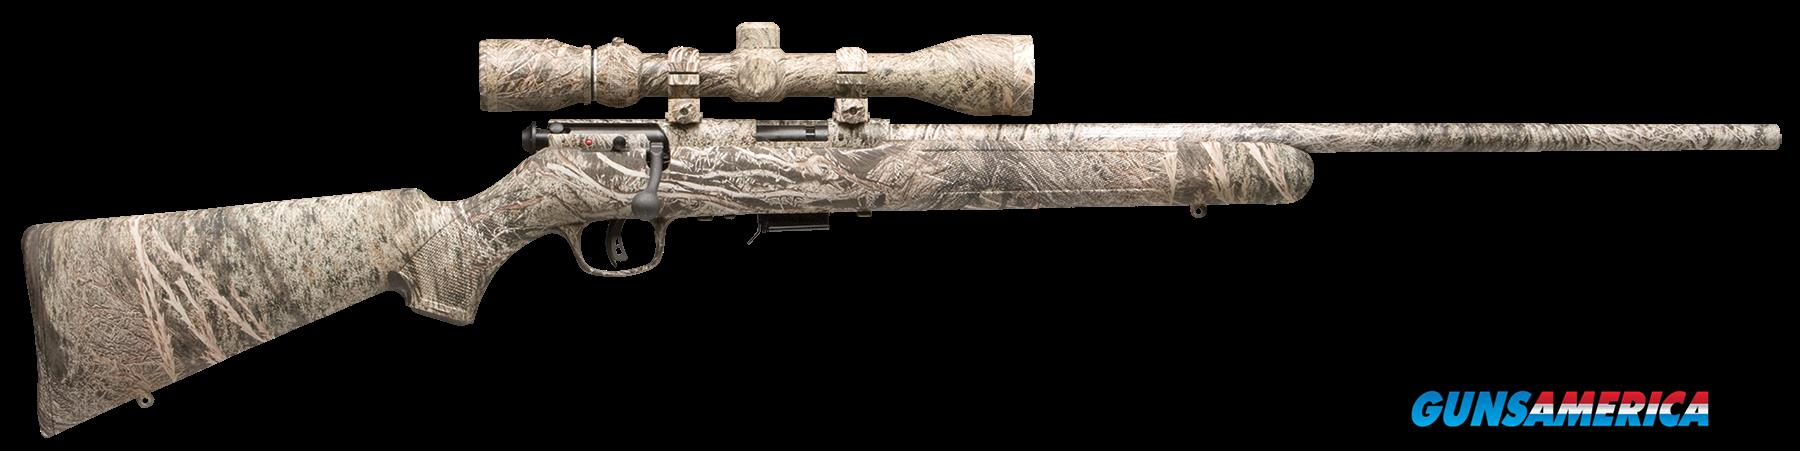 "Savage 96765 93R17 XP Camo Brush with Scope Bolt 17 HMR 22"" 5+1 Synthetic Mossy Oak Brush Stk Mossy  Guns > Rifles > S Misc Rifles"